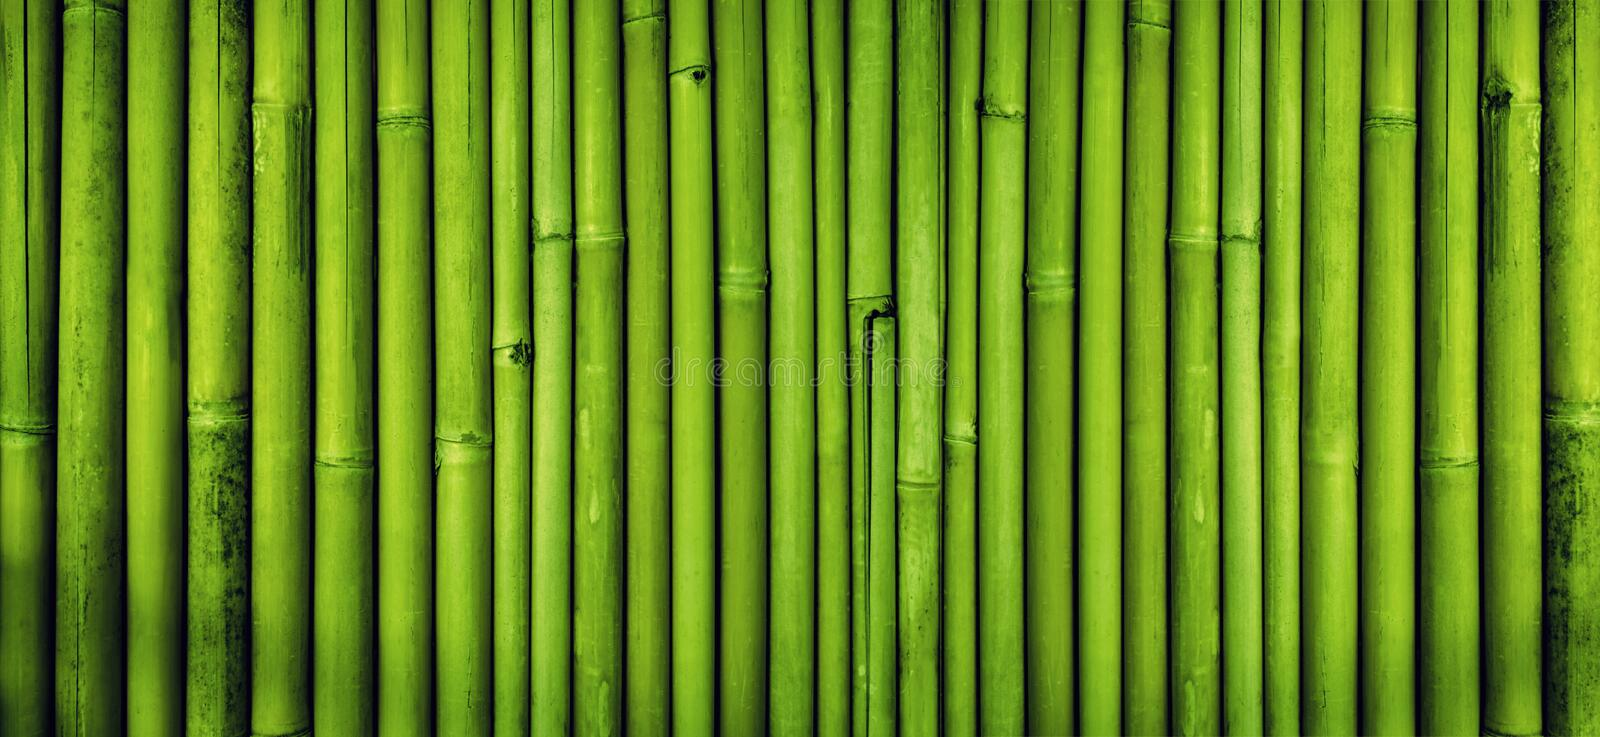 Green bamboo fence texture background, bamboo texture panorama royalty free stock photos